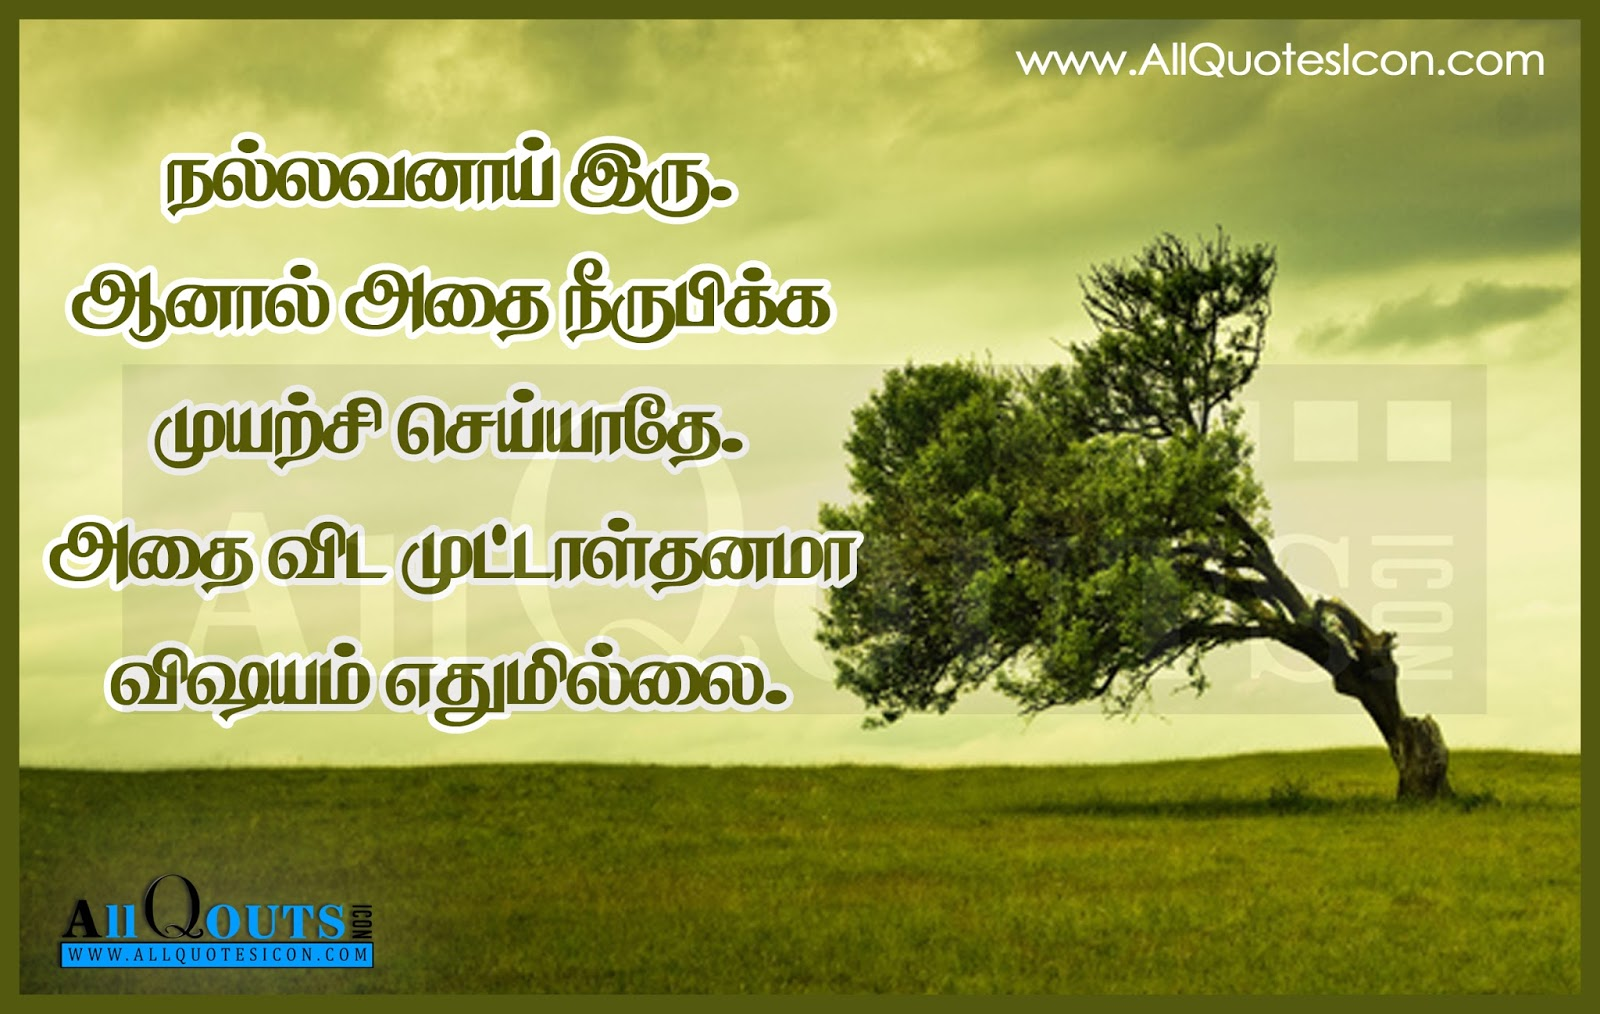 Happy Life Quotes In Tamil Daily Motivational Quotes